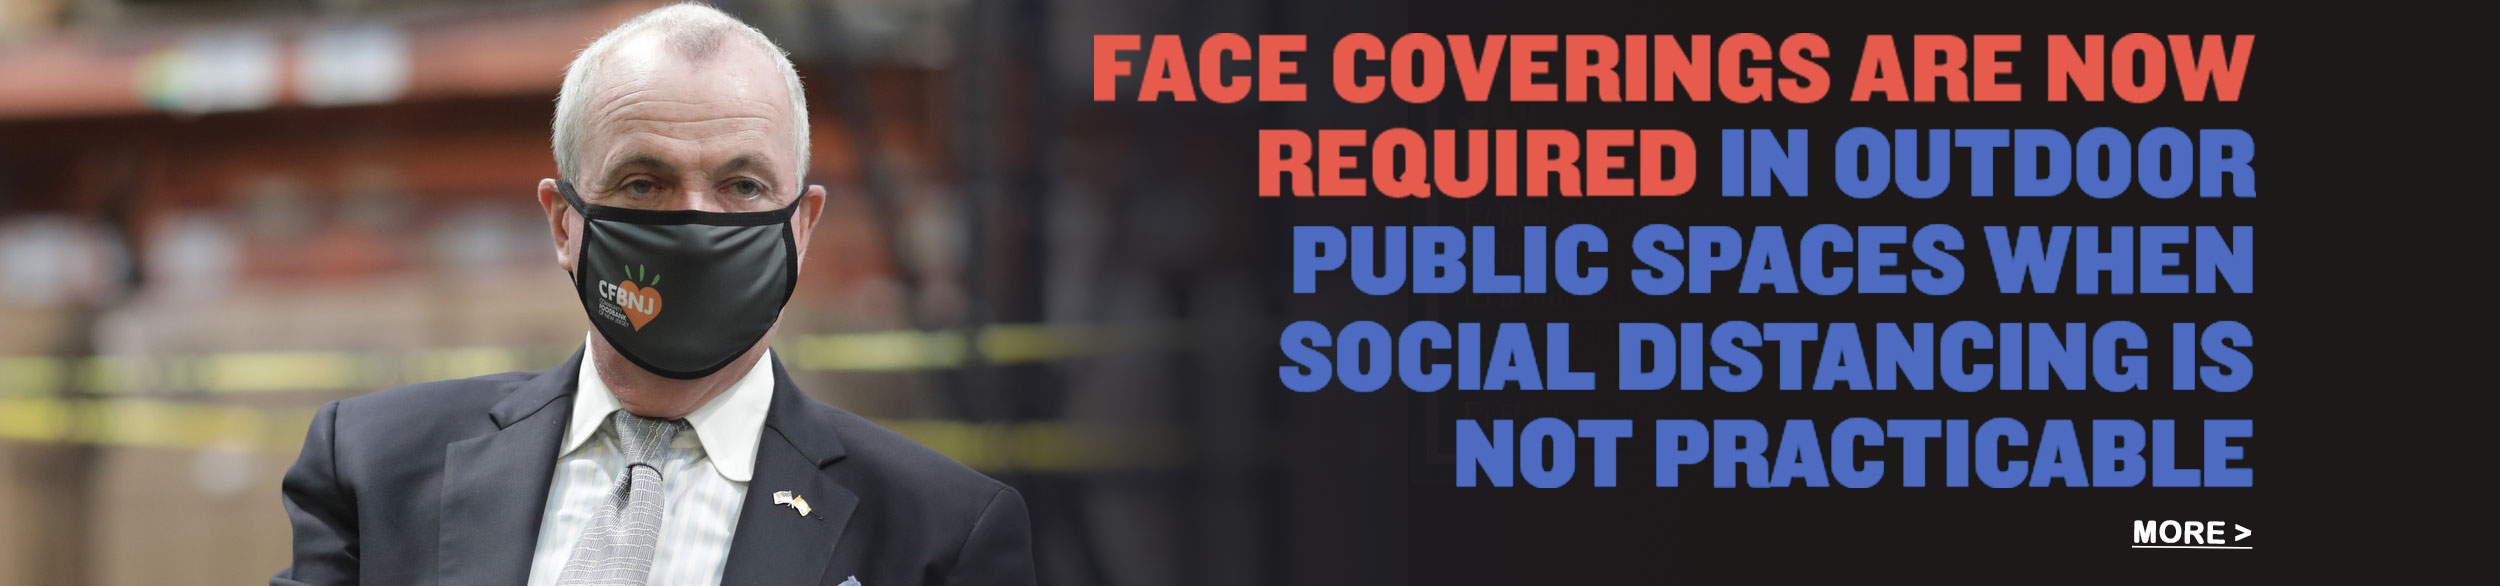 Face Coverings Are Now Required In Outdoor Public Spaces When Social Distancing Is  Not Practicable